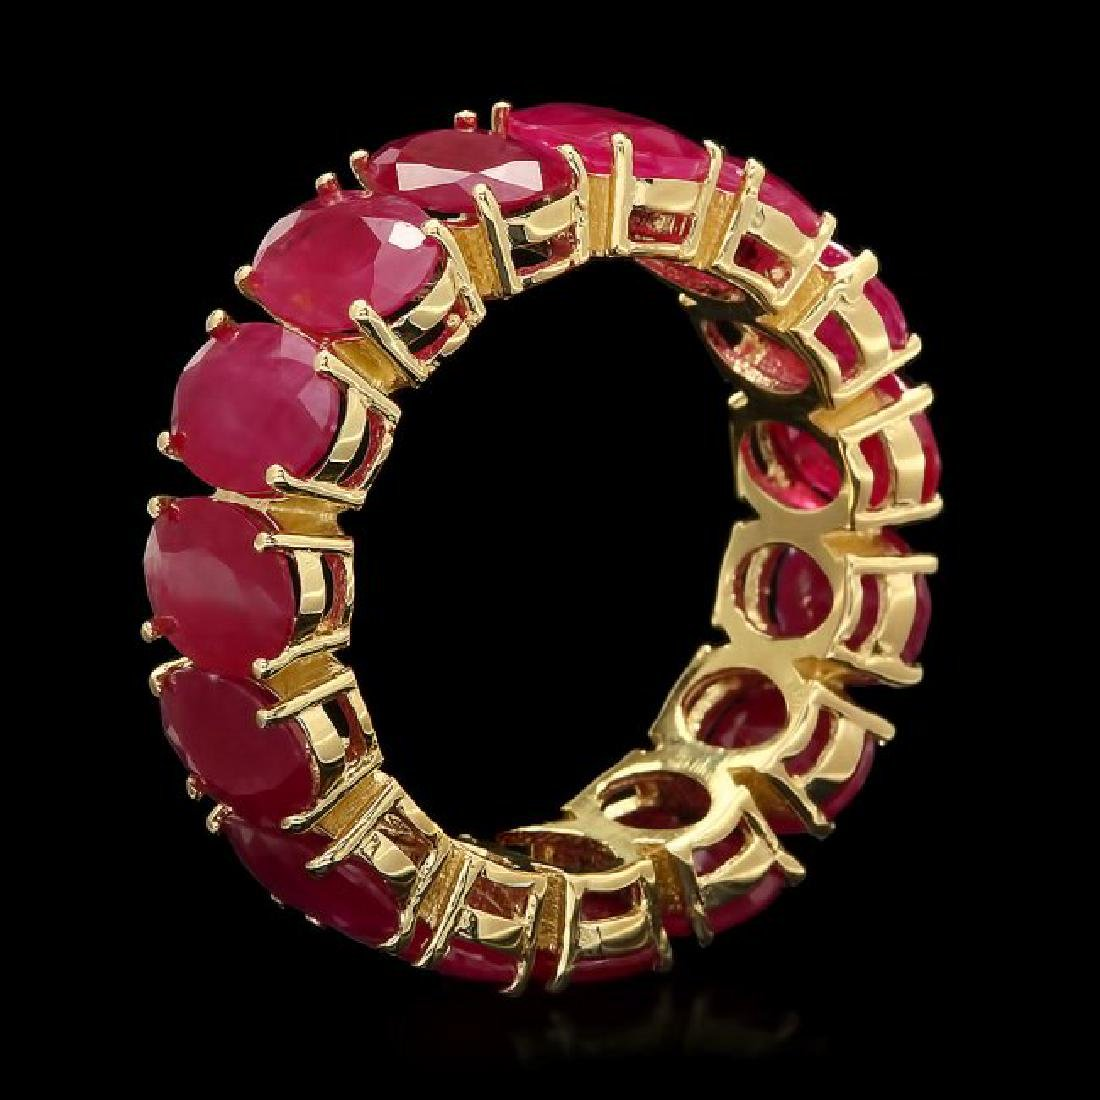 14k Yellow Gold 13.30ct Ruby Ring - 2